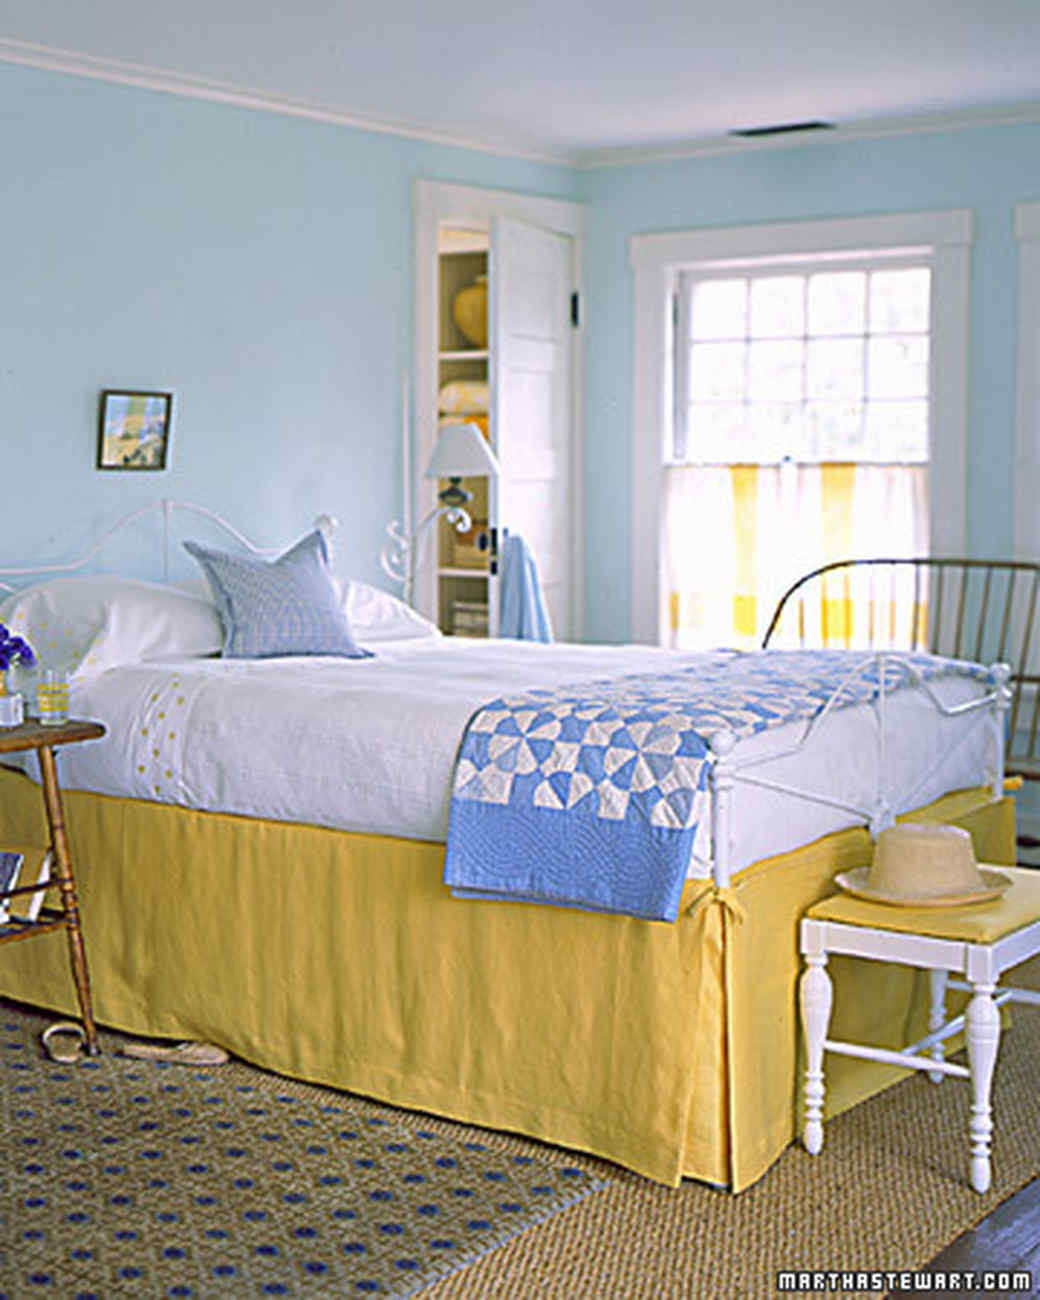 yellow rooms martha stewart - Yellow Bed Frame